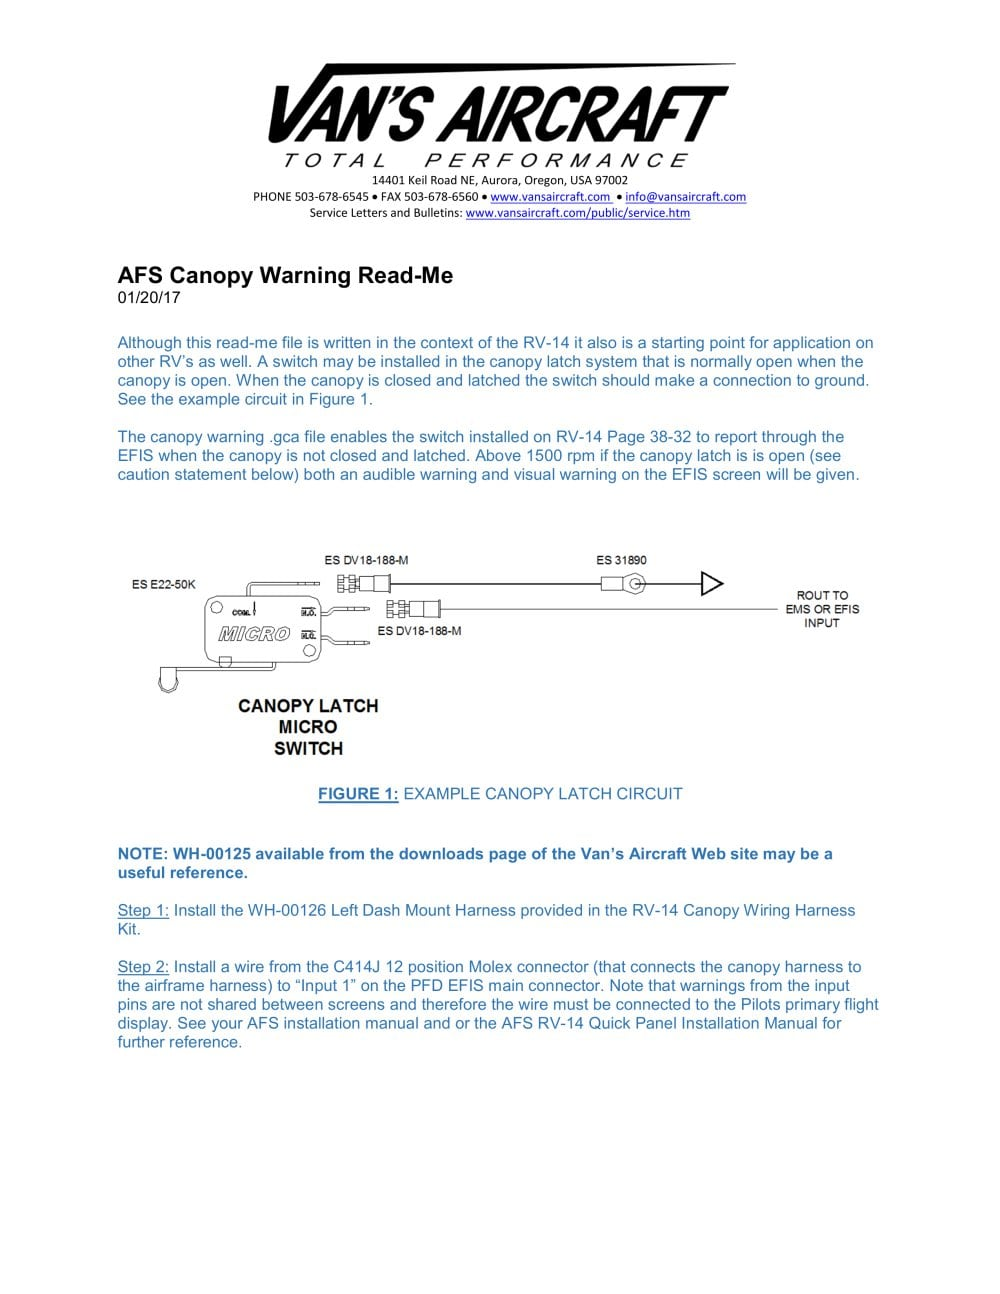 AFS Canopy Warning - 1 / 3 Pages  sc 1 st  Catalogs Aeroexpo & AFS Canopy Warning - Vans Aircraft Inc. - PDF Catalogs | Technical ...